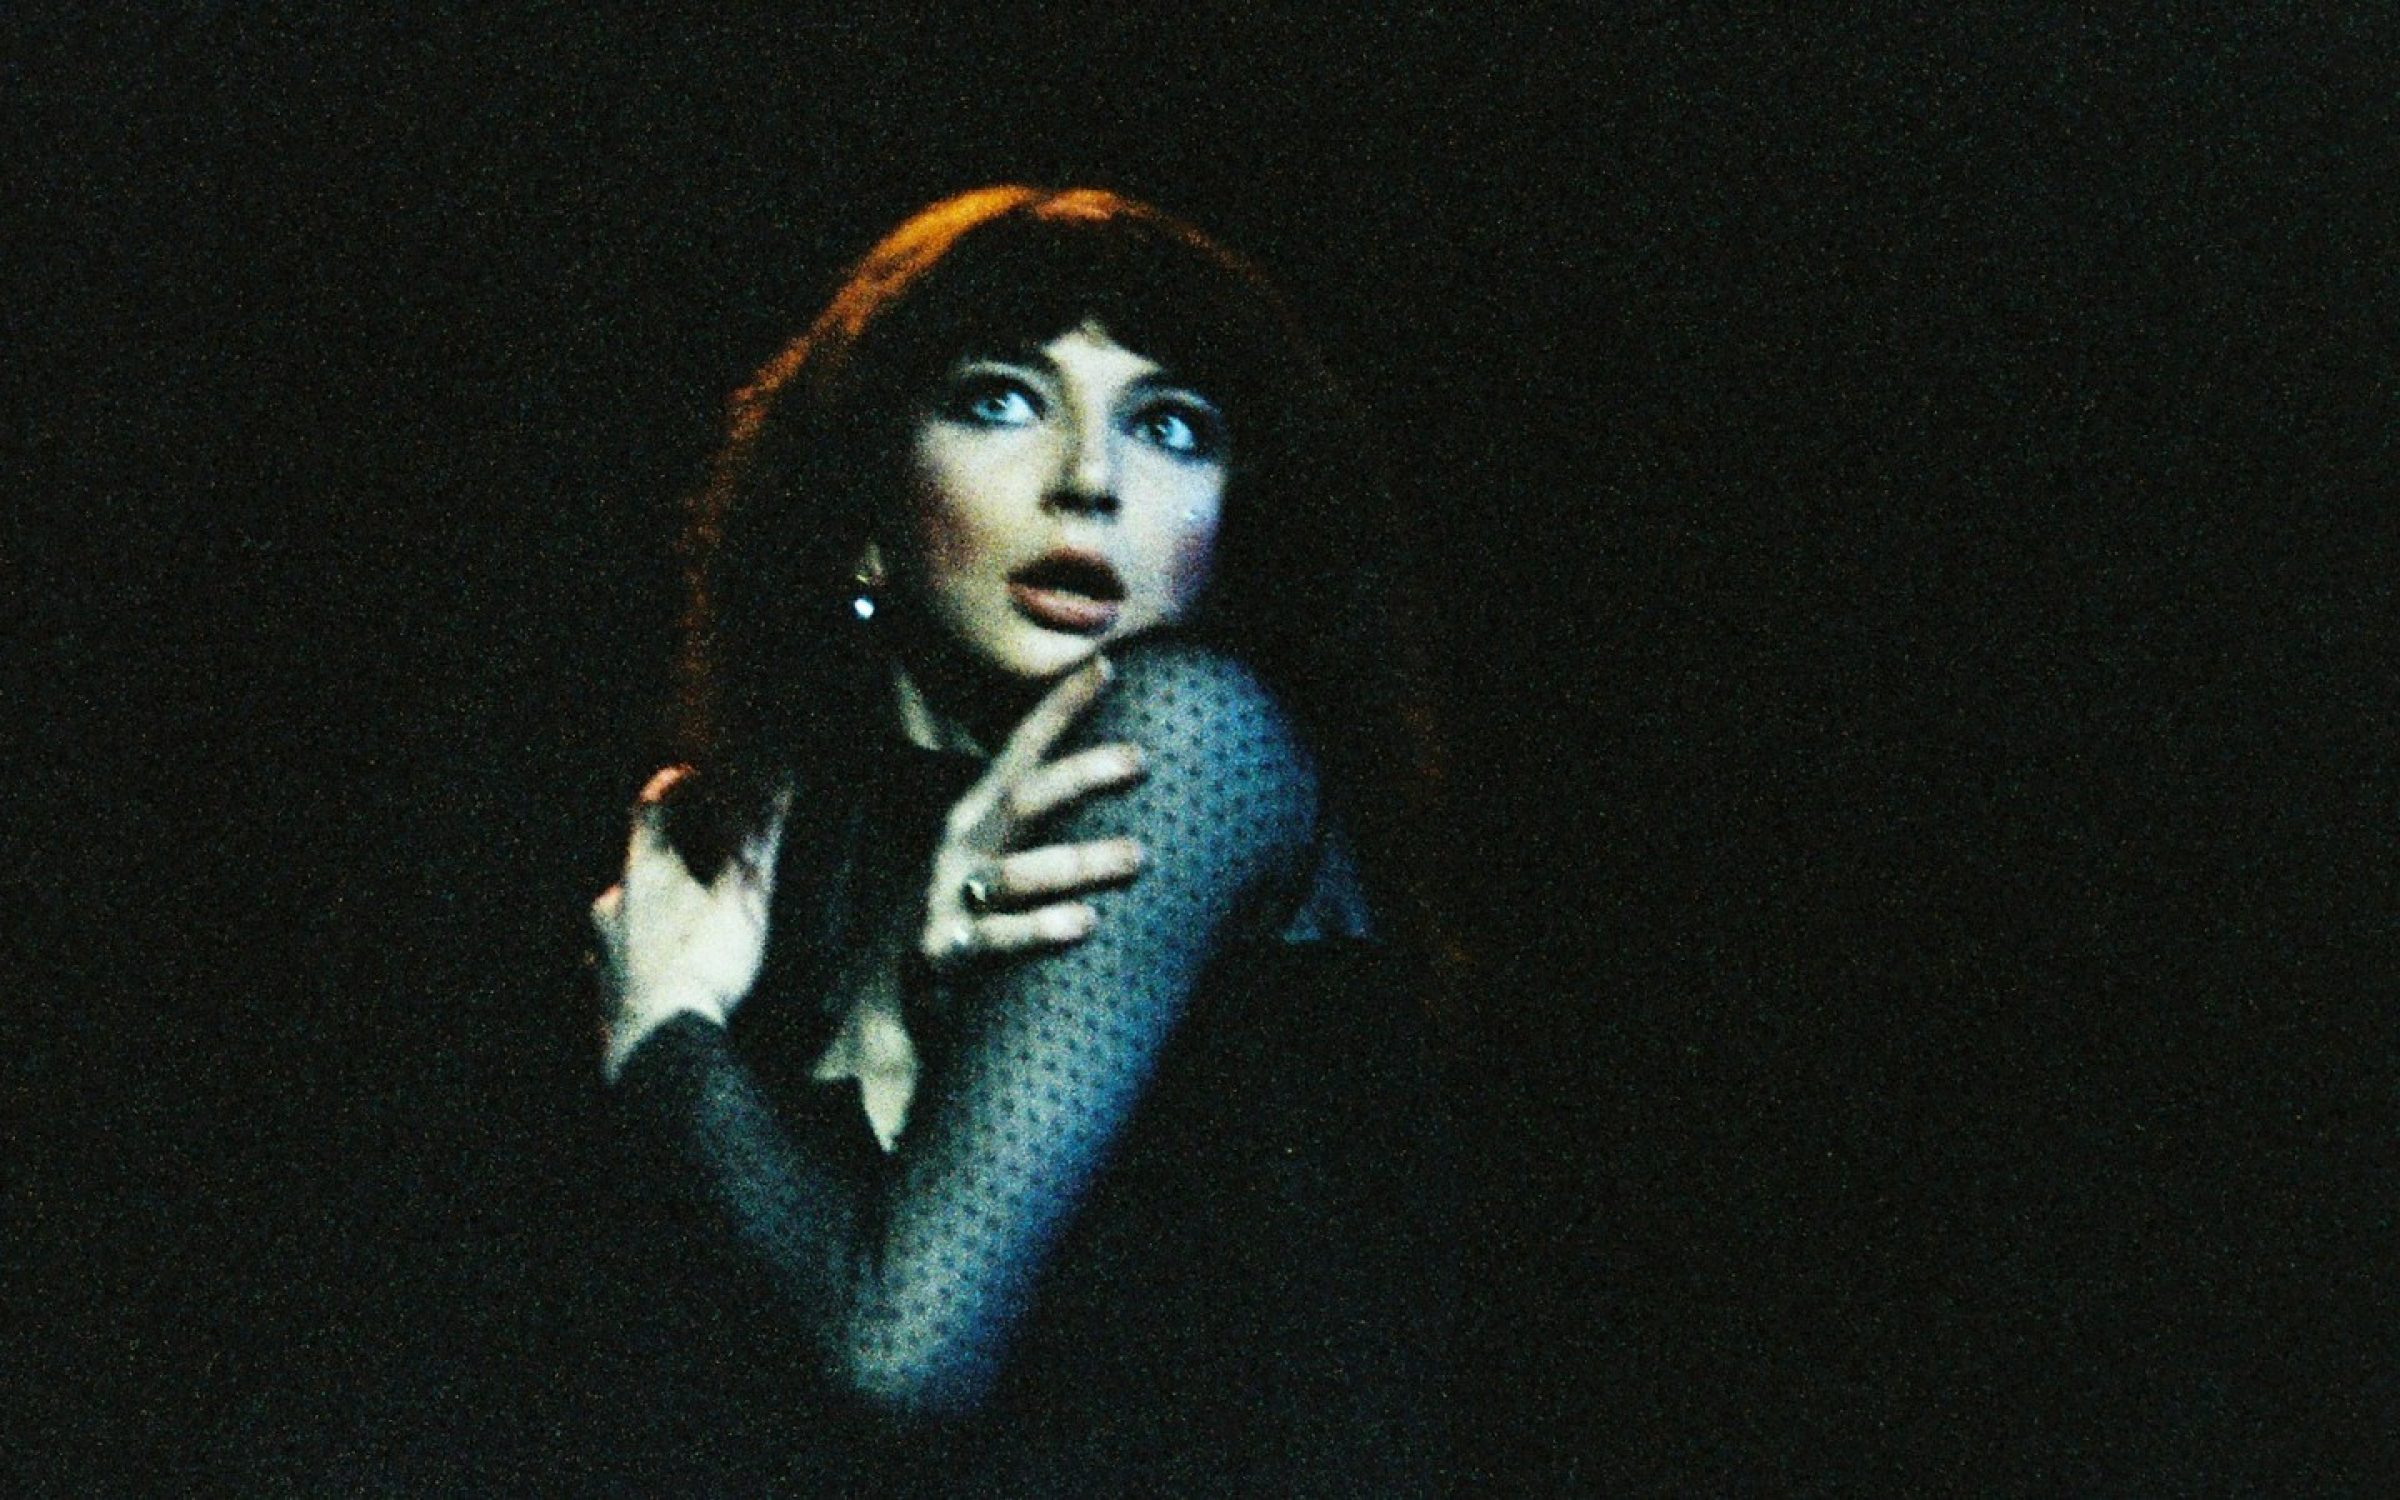 Kate Bush performs live in London, 1979. Credit: Pete Still / Getty Images.